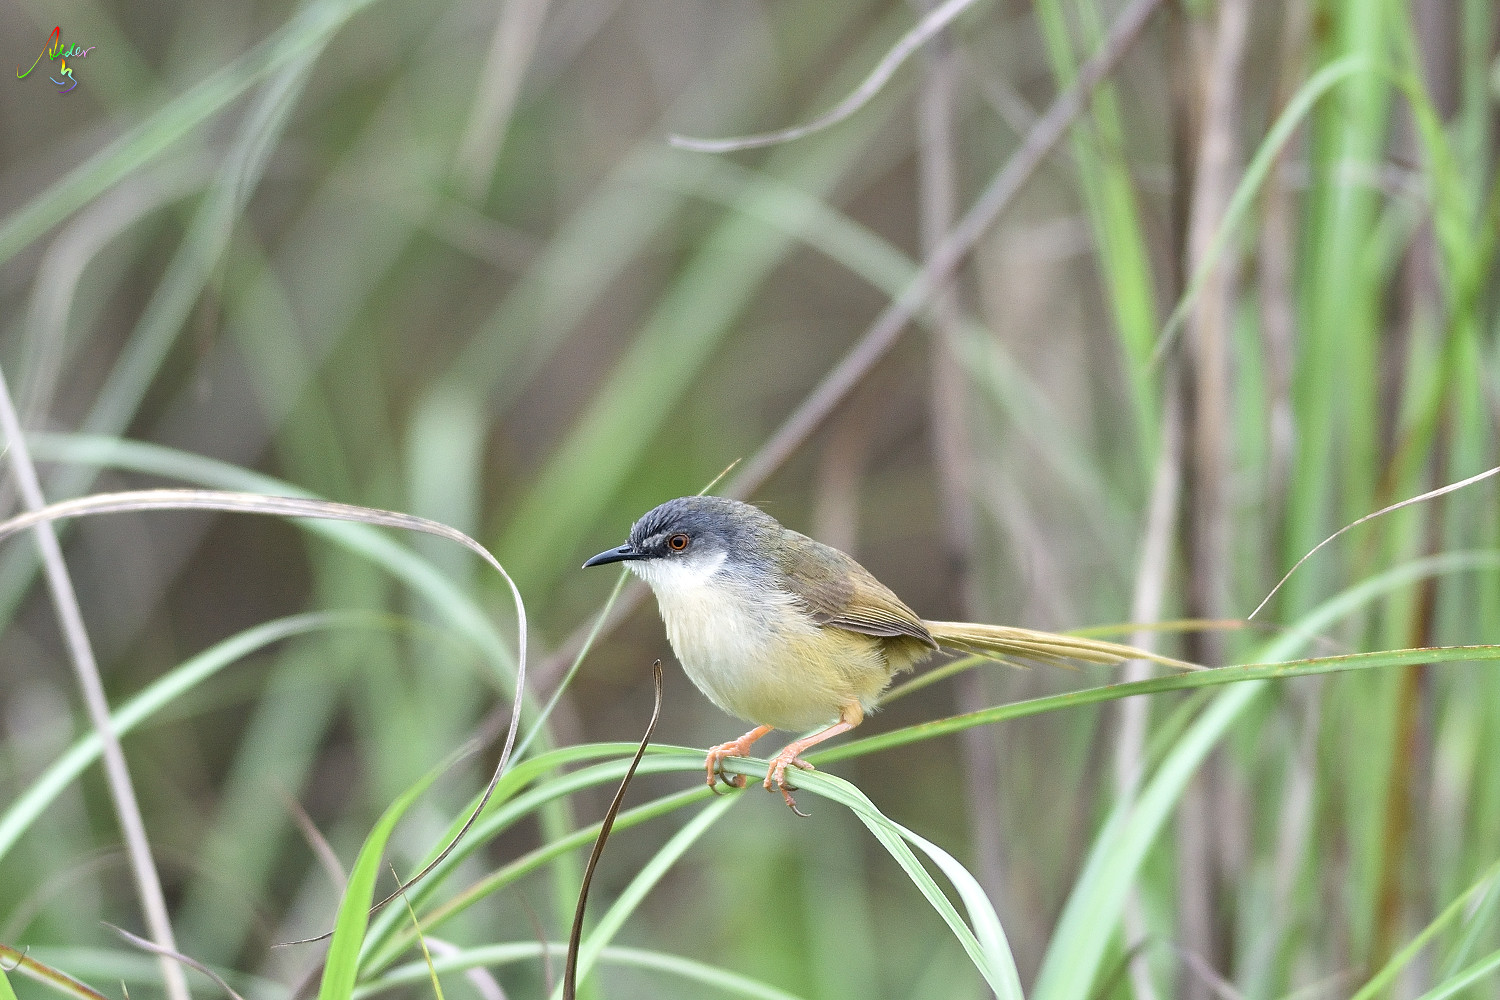 Yellow-bellied_Prinia_3679